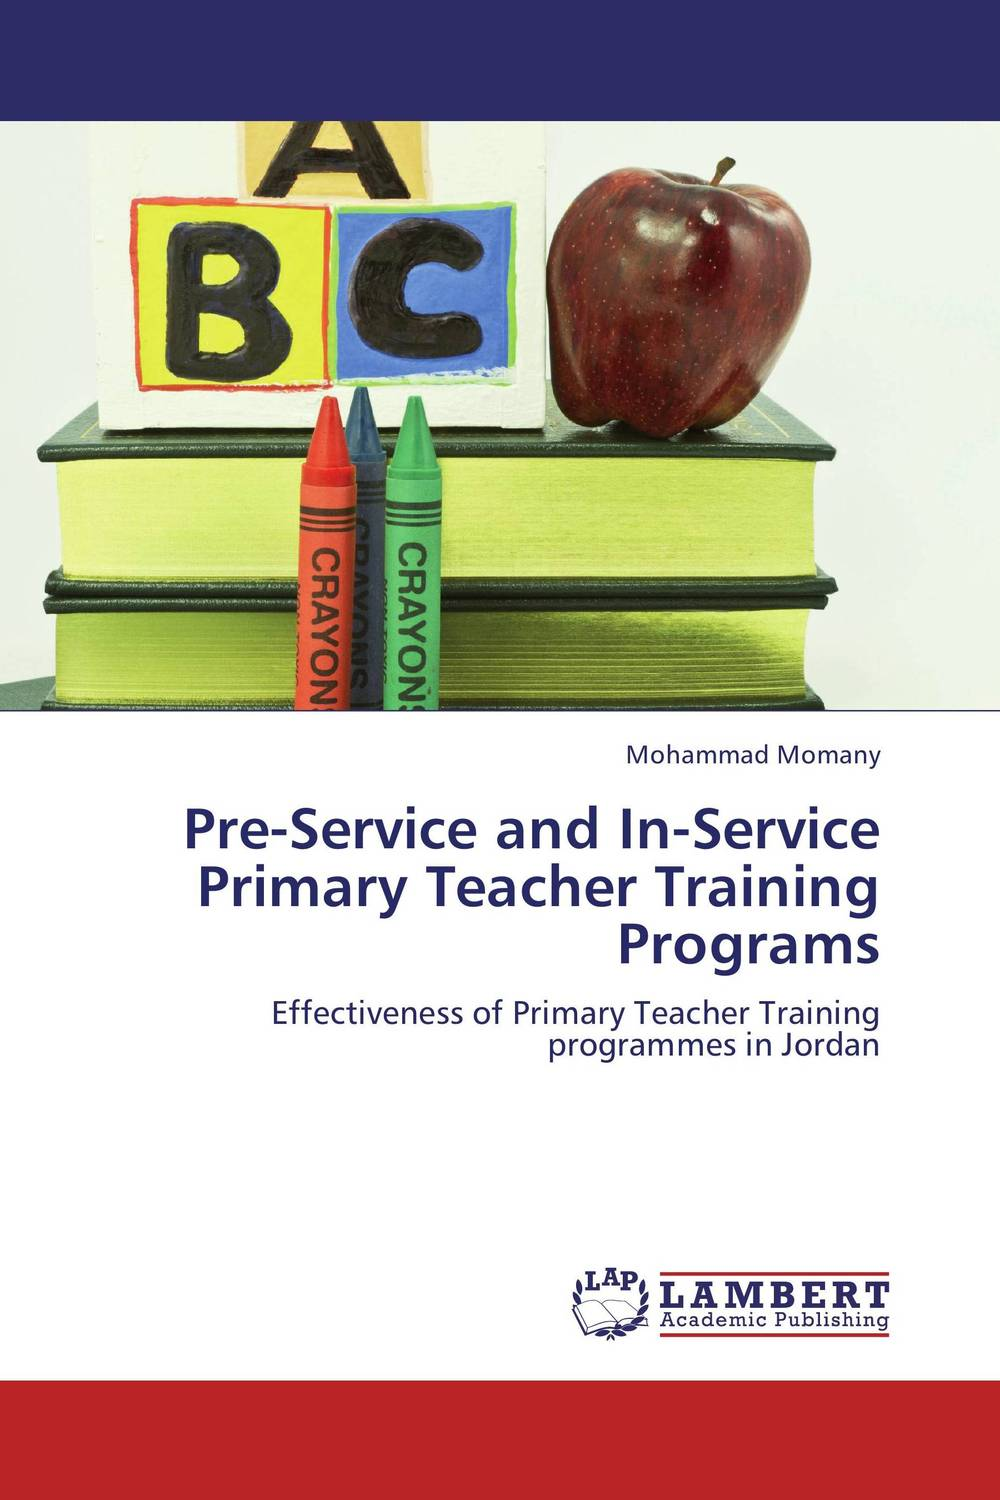 Pre-Service and In-Service Primary Teacher Training Programs